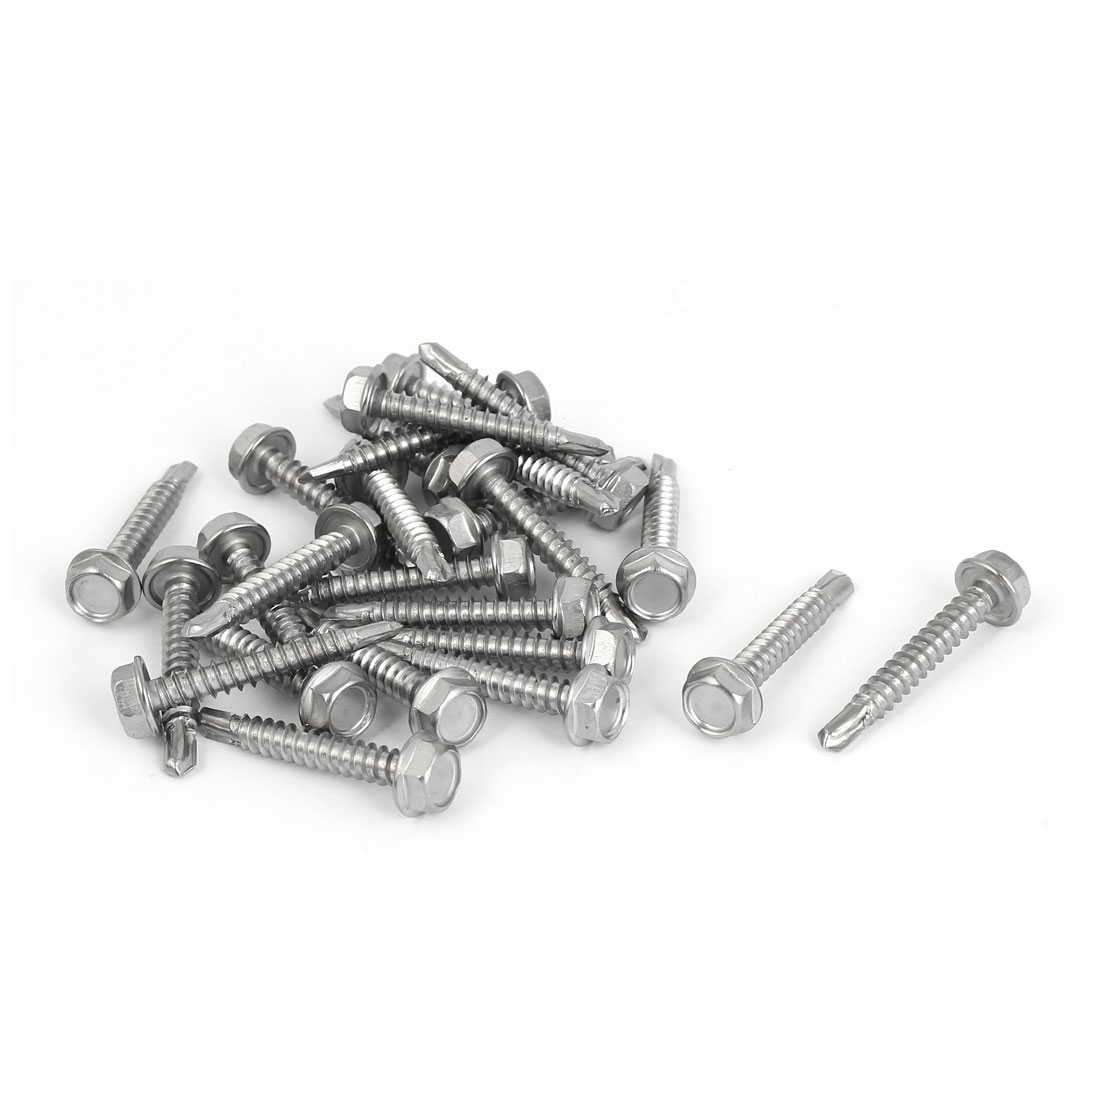 M4.8 x 32mm Thread Hex Washer Head Self Drilling Tek Screws Bolts 25 Pcs